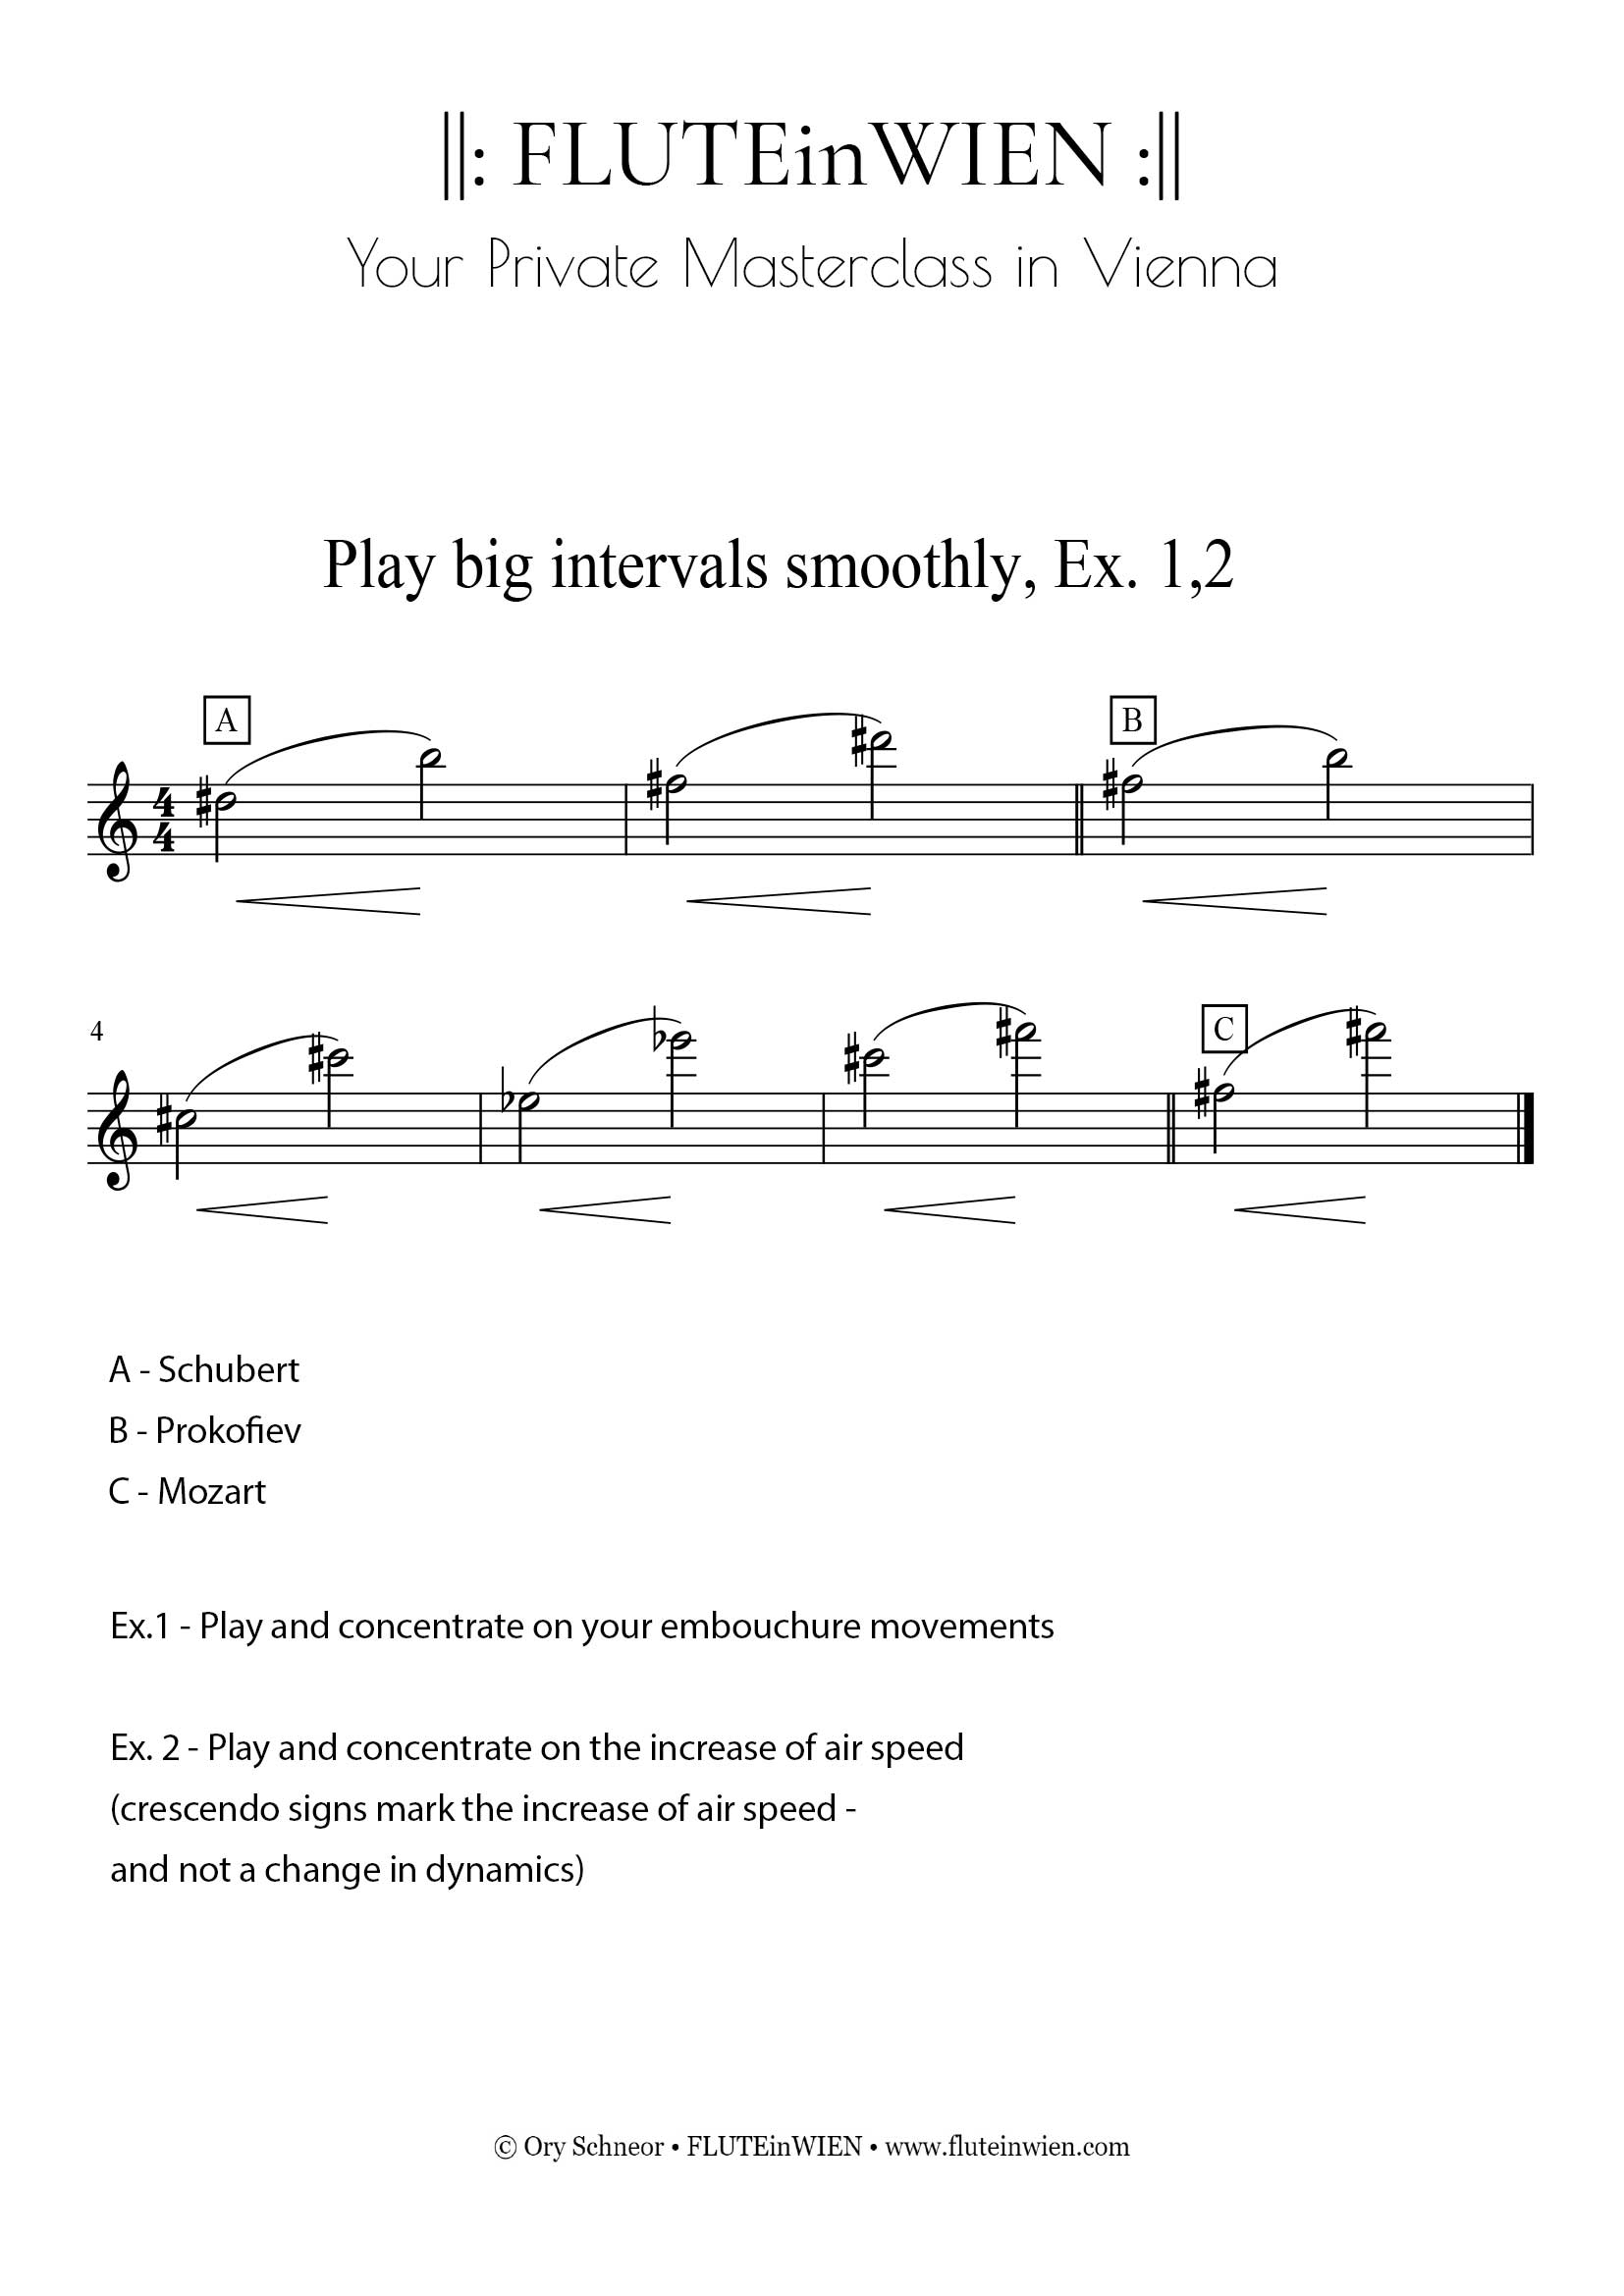 How to play intervals smoothly ,Ex.1-2